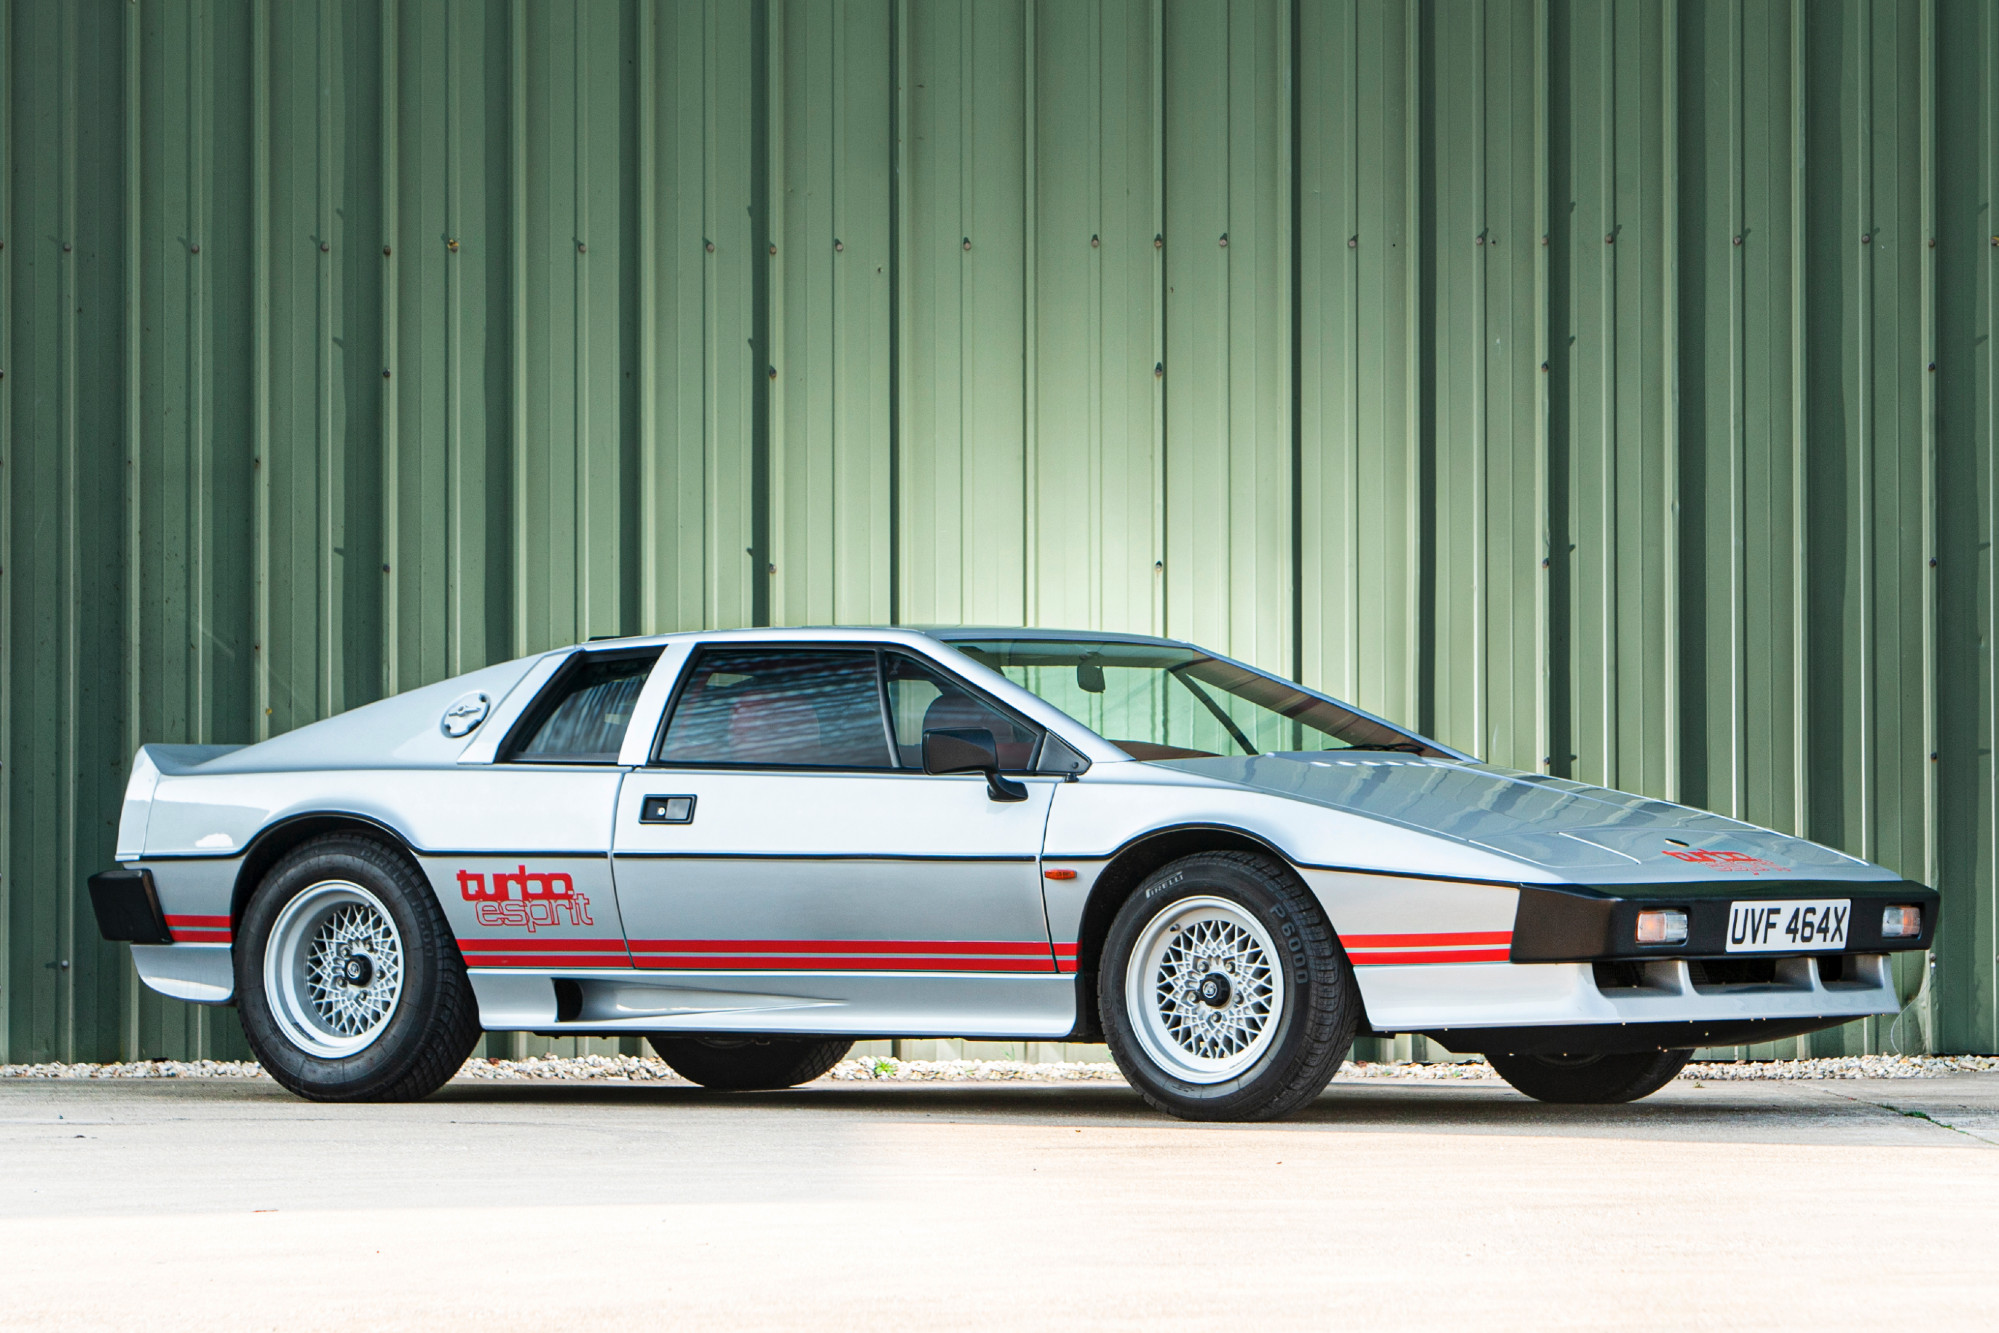 Colin Chapman's personal Lotus Esprit bought back by factory